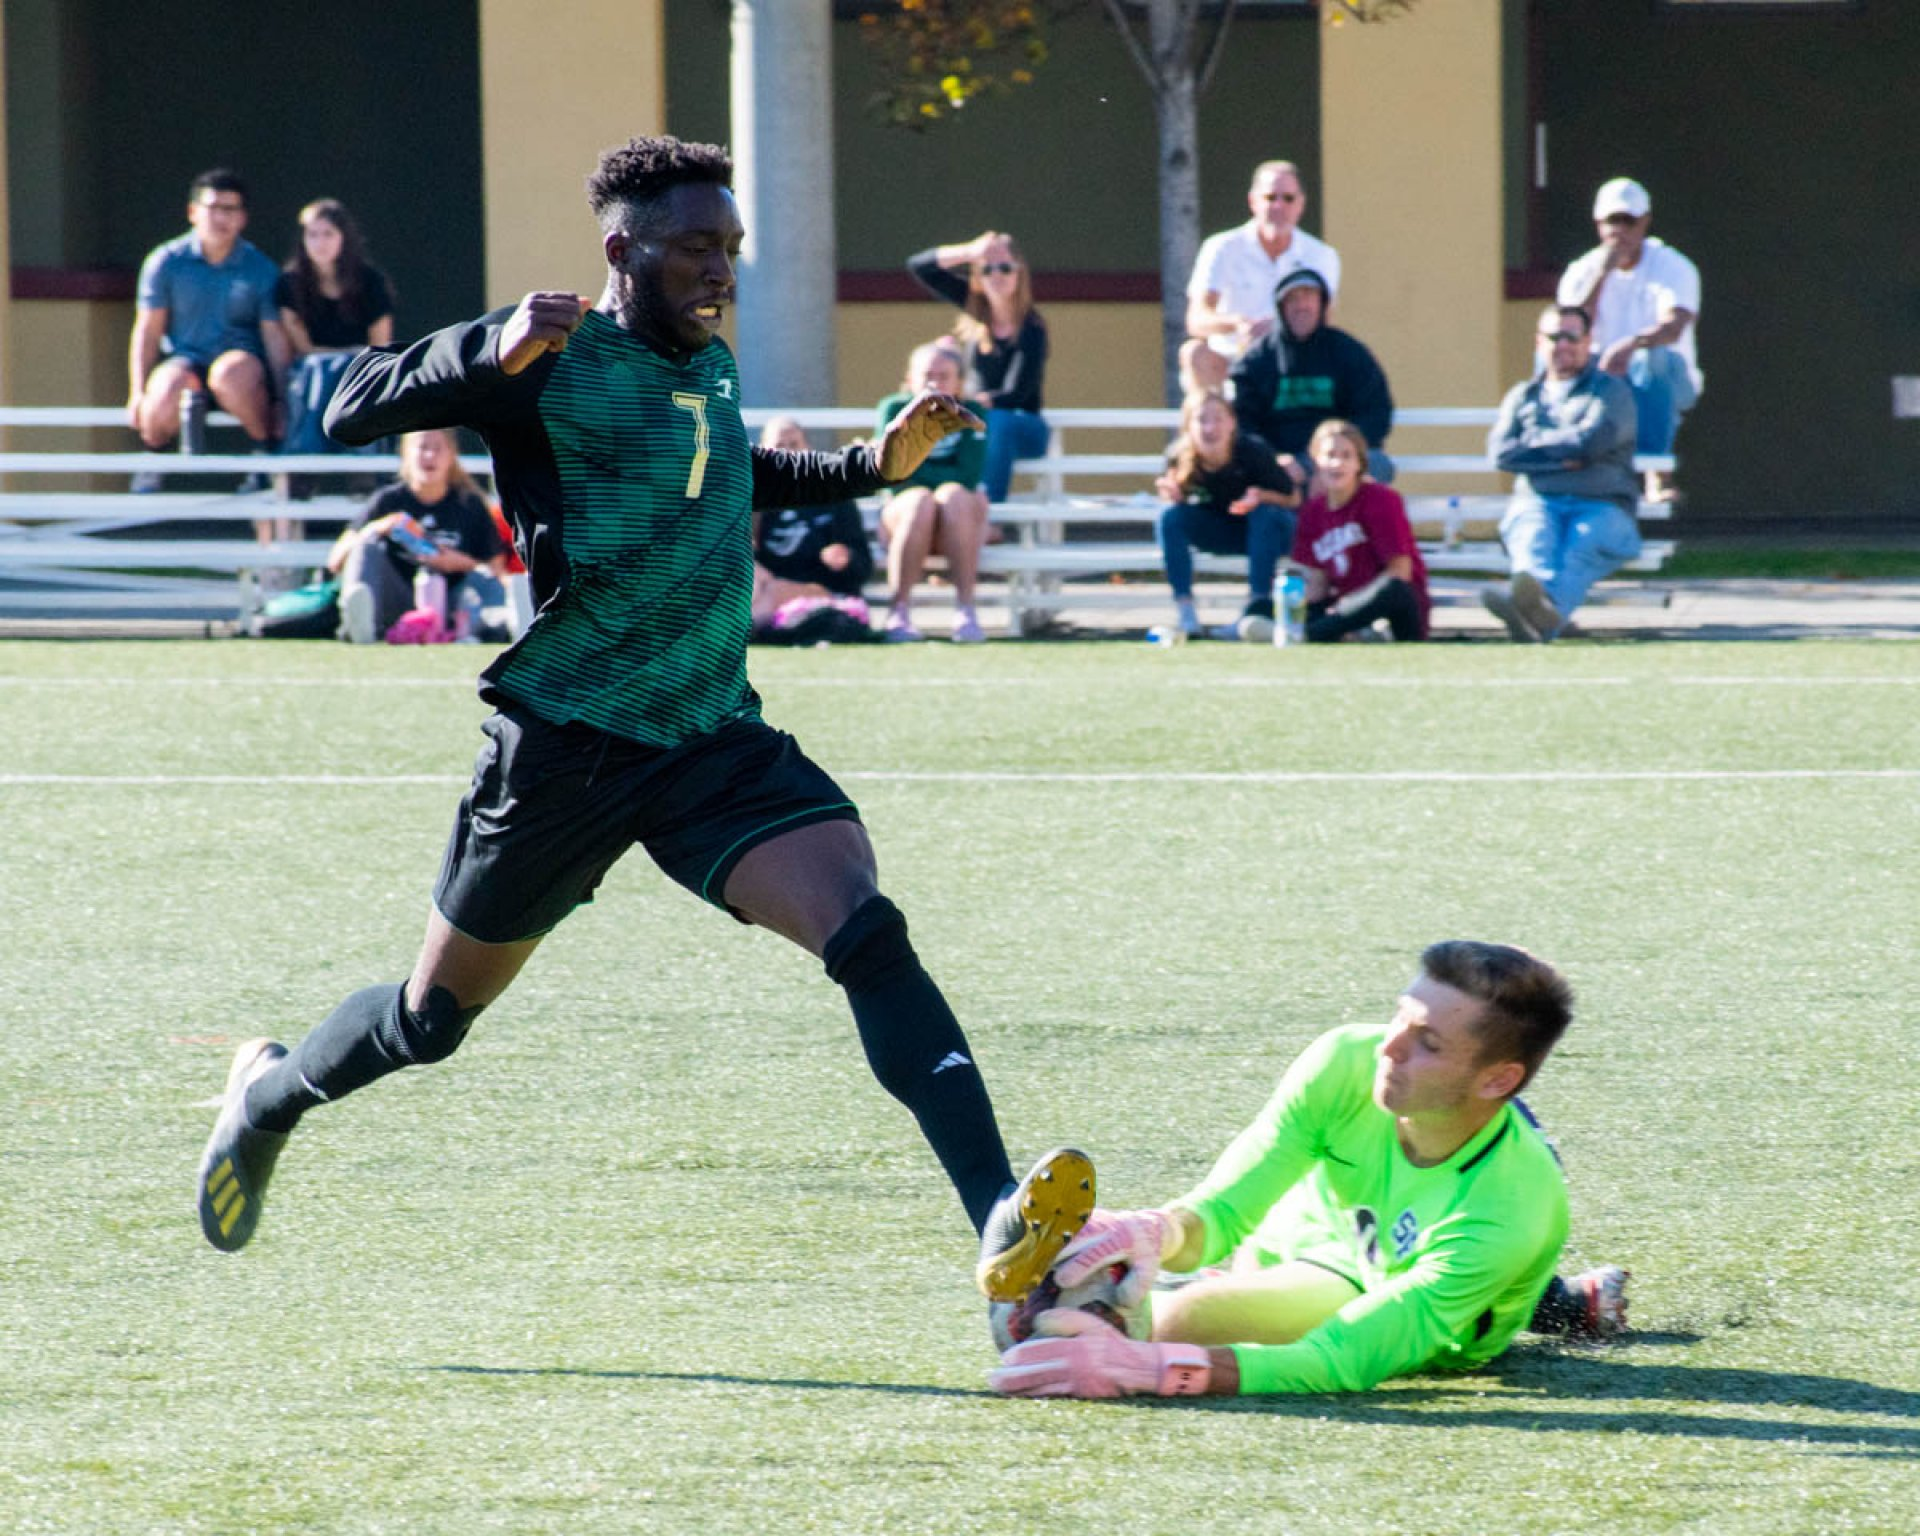 Humboldt State forward Isaiah Dairo avoids a collision with San Fransisco State goalkeeper Peter Swinkels at the College Creek Field on Nov. 3.